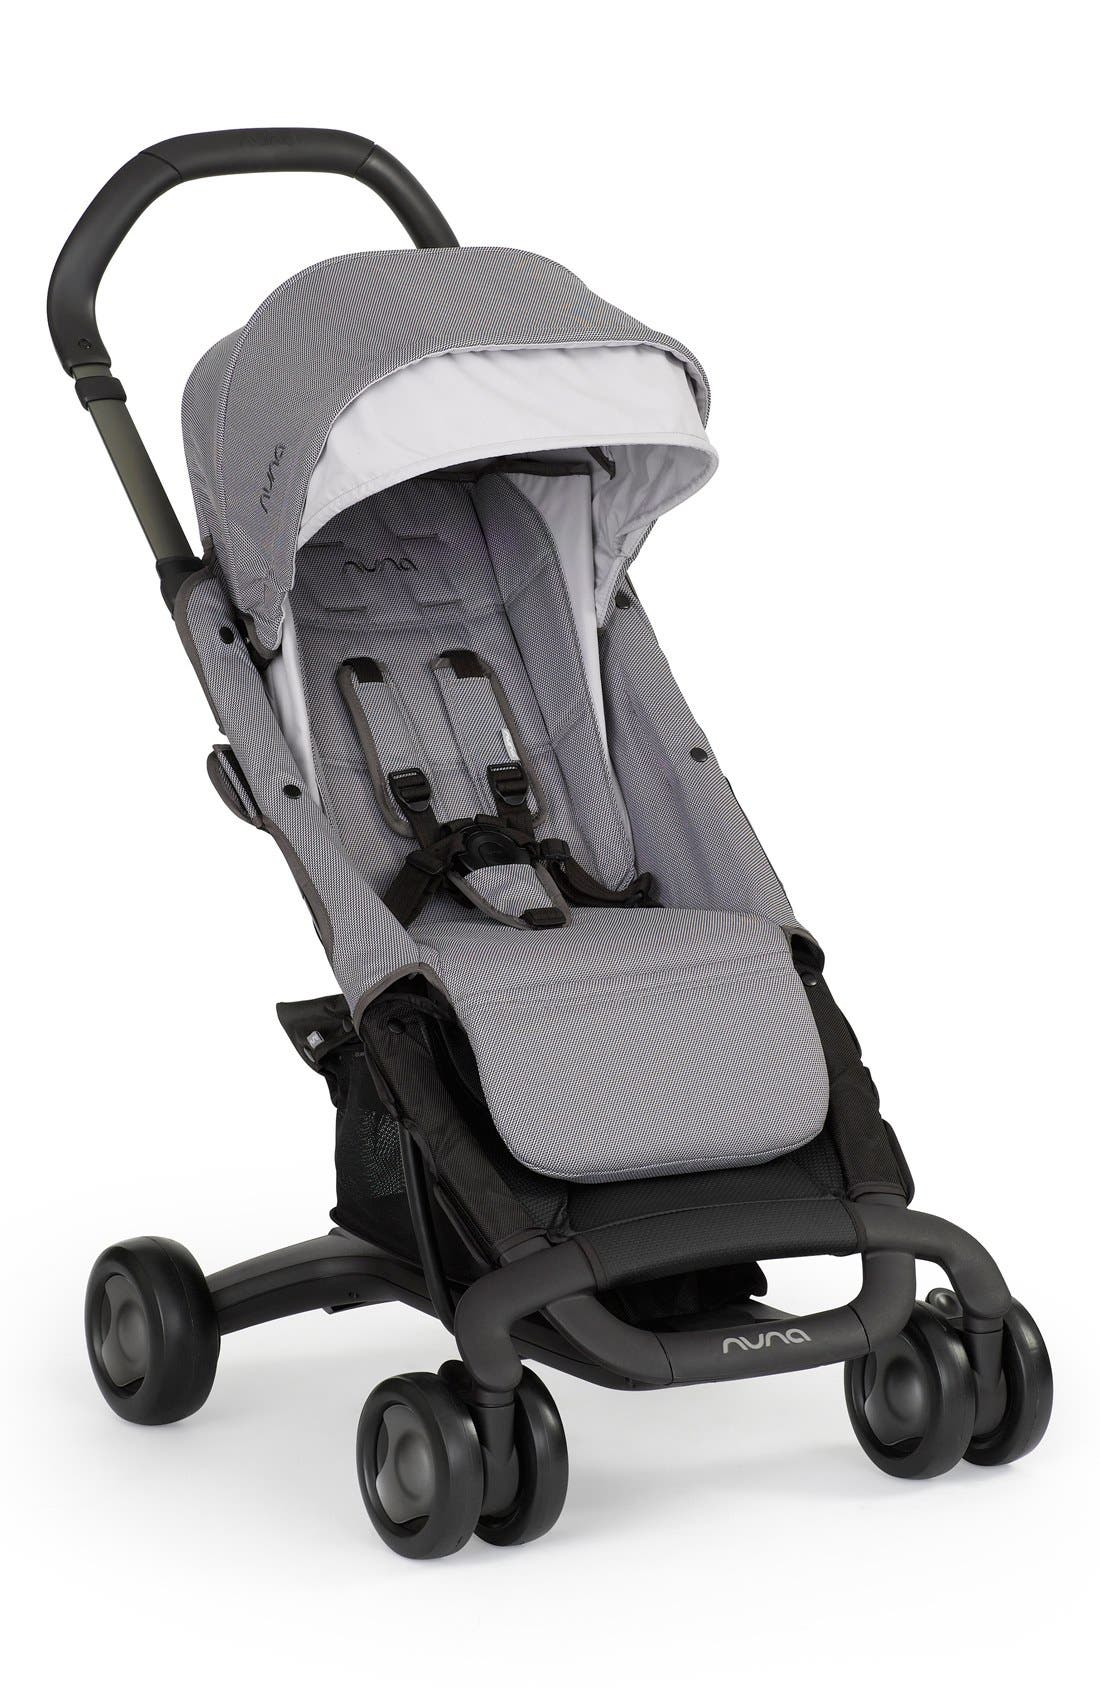 Alternate Image 1 Selected - nuna 'PEPP™' Stroller (Online Only)